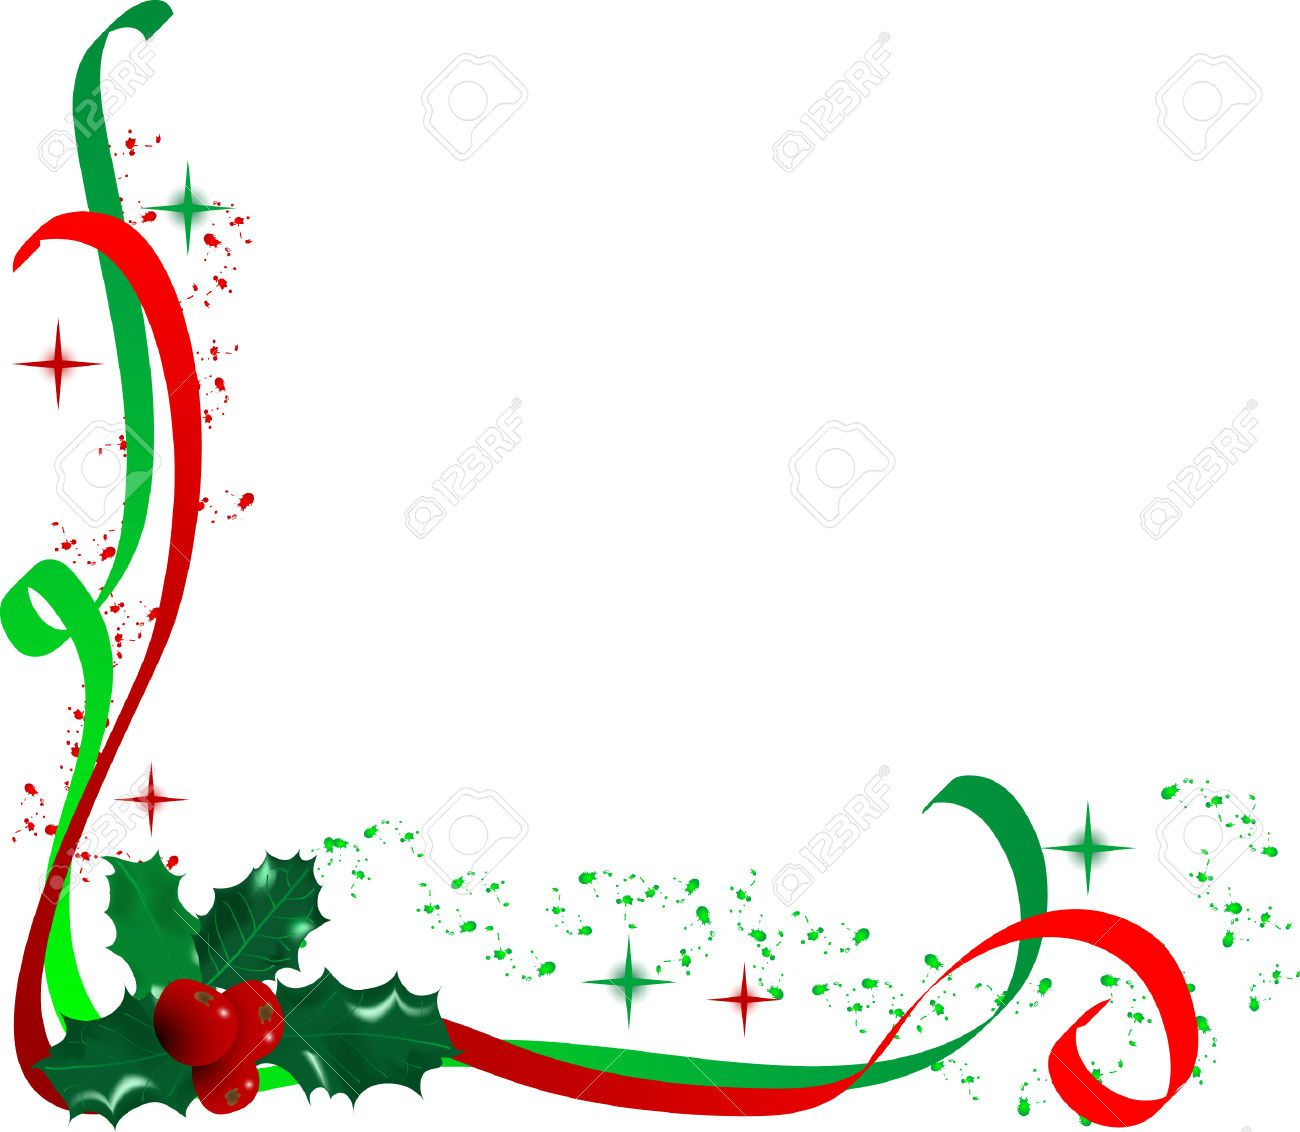 Holly corner clipart image library download Christmas Holly Corner Border Clip Art | Holly Corner ... image library download